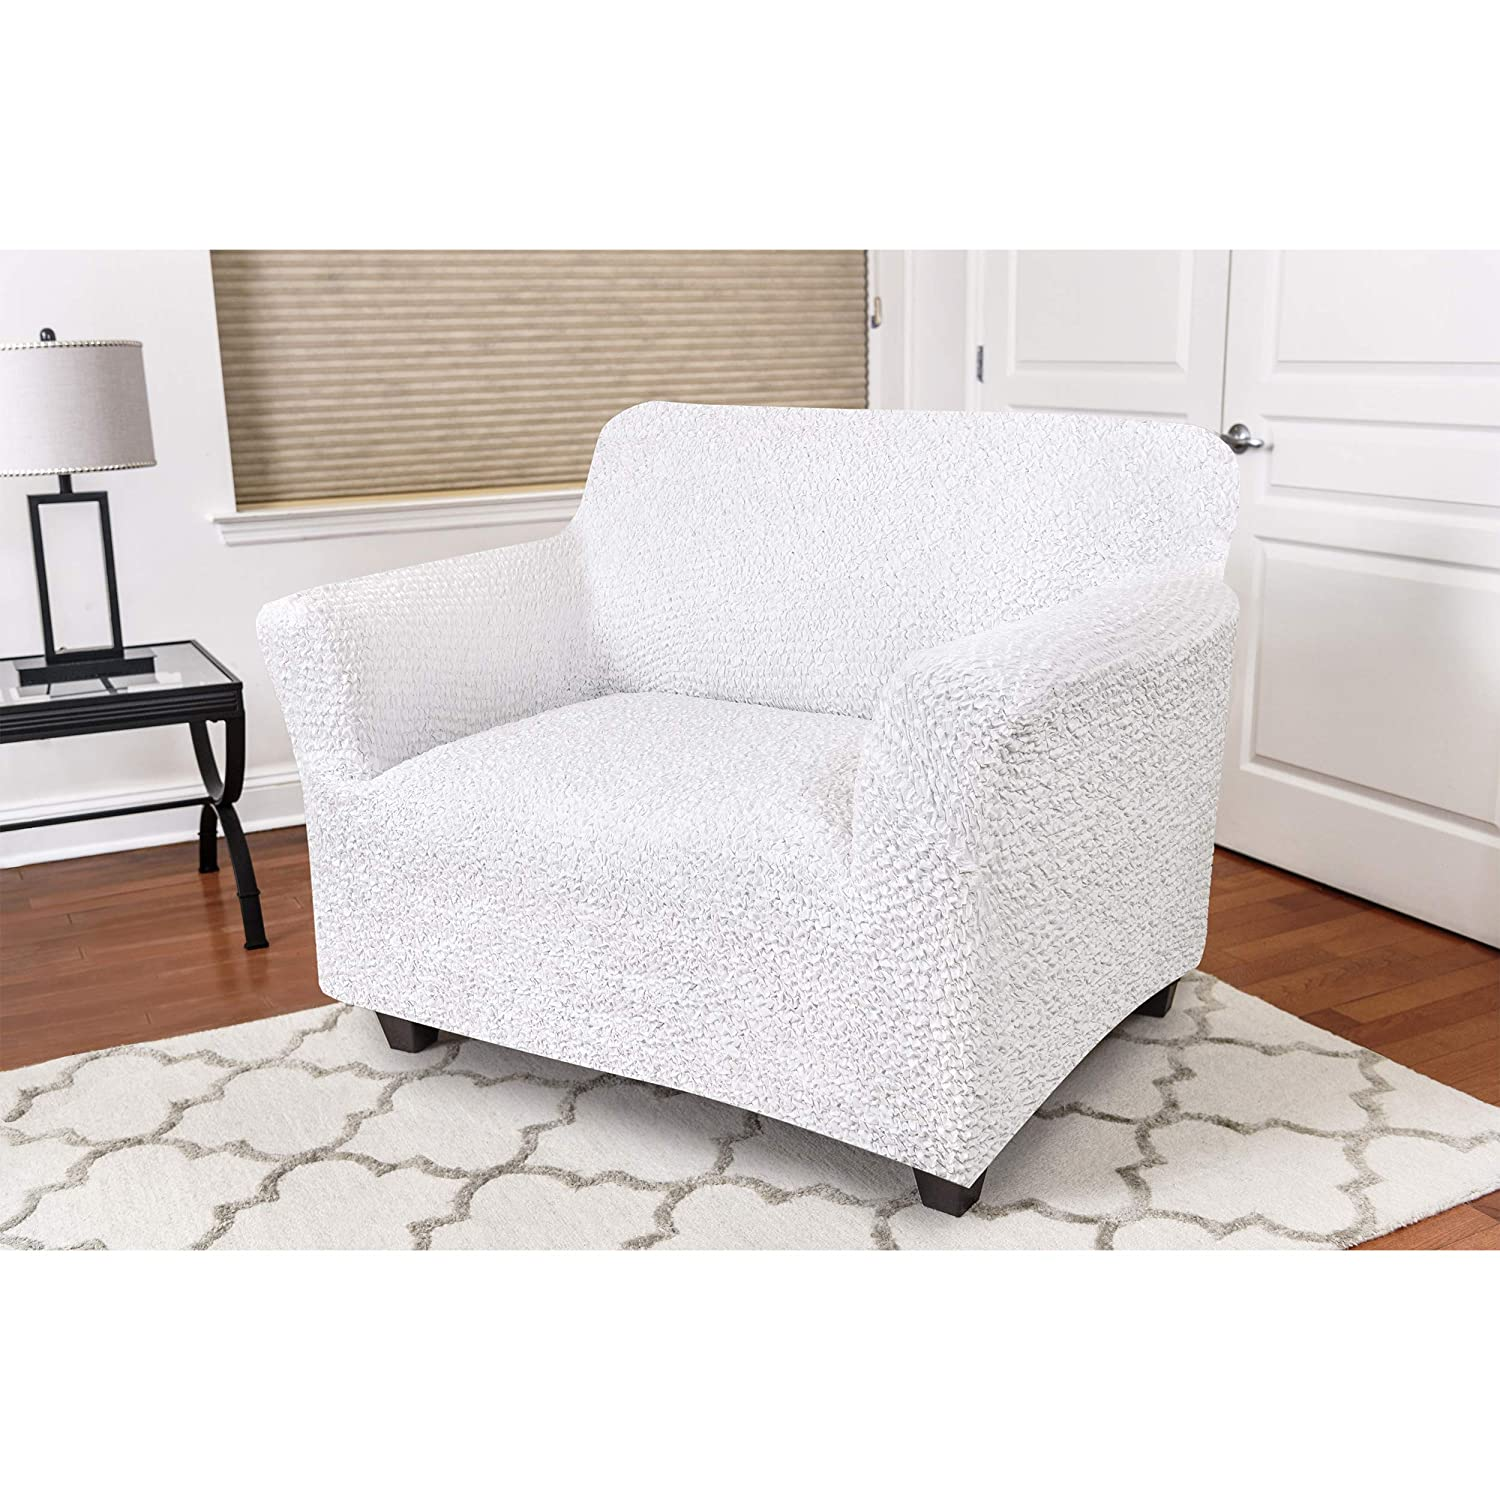 PAULATO BY GA.I.CO. Chair Cover - Armchair Cover - Armchair Slipcover - Soft Polyester Fabric Slipcover - 1-Piece Form Fit Stretch Stylish Furniture ...